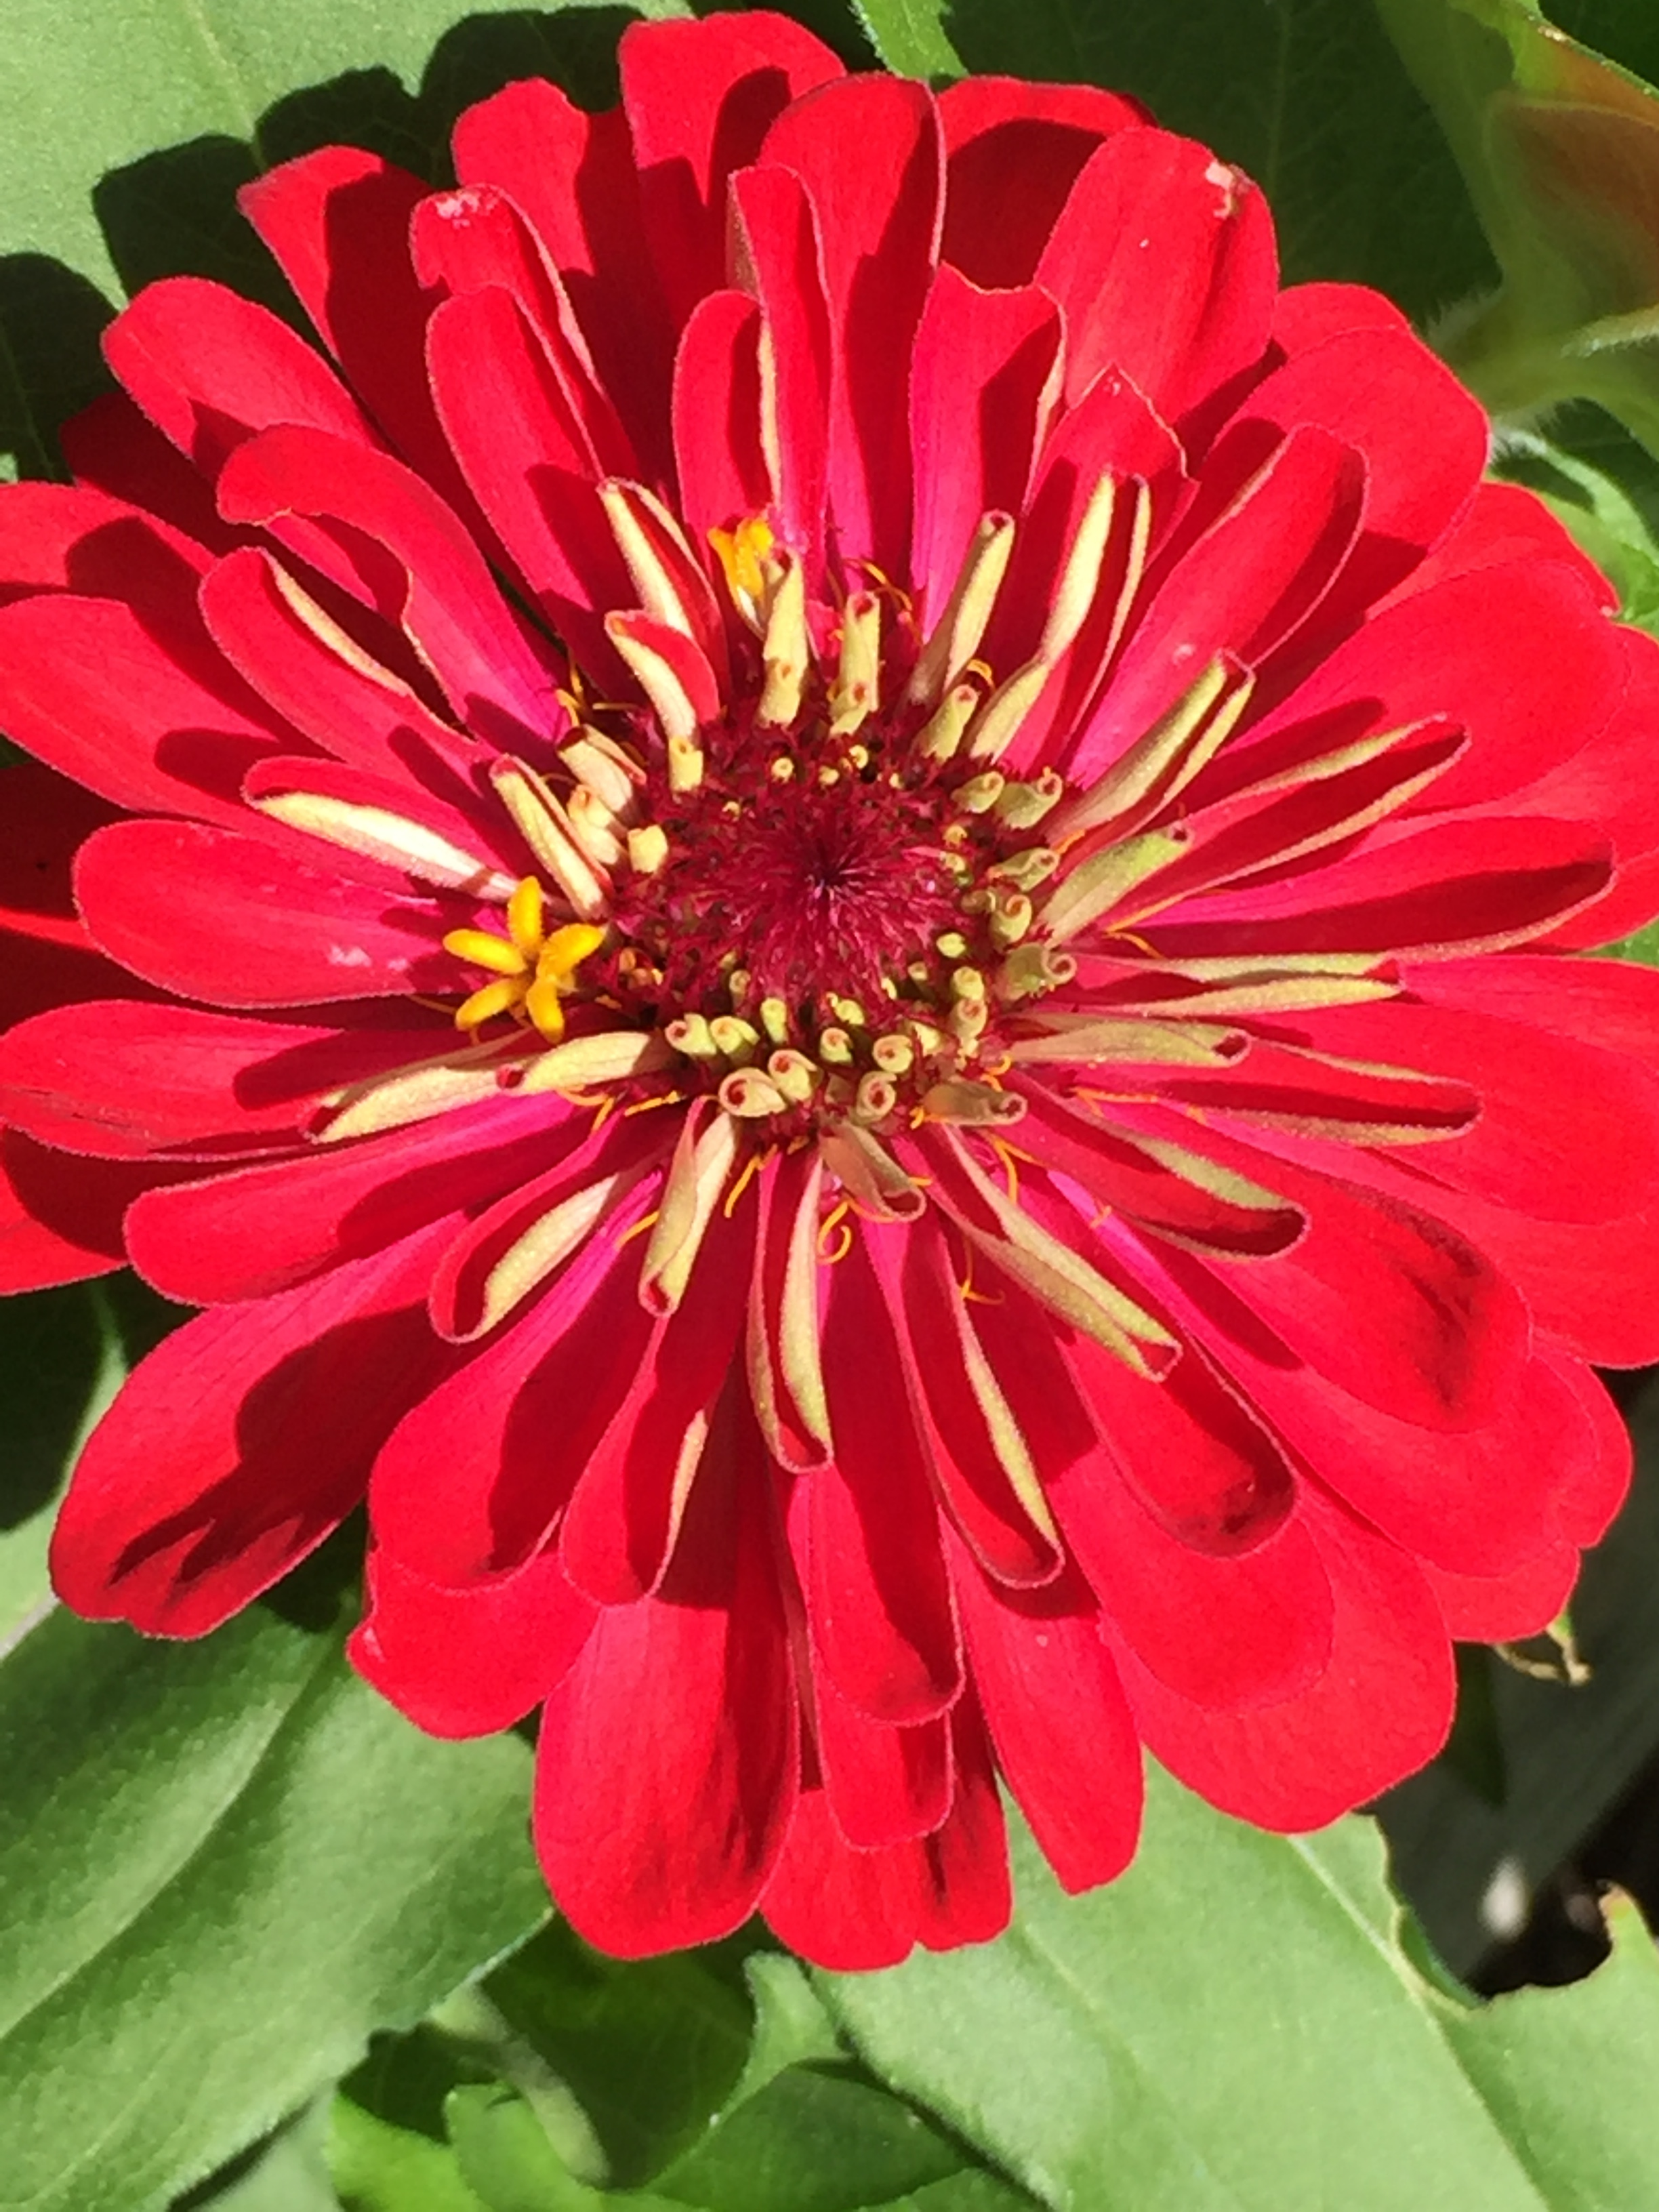 My garden is yielding gorgeous zinnias and cosmos  thanks  to the heat & humidity.  I, on the other hand, am wilting :-(